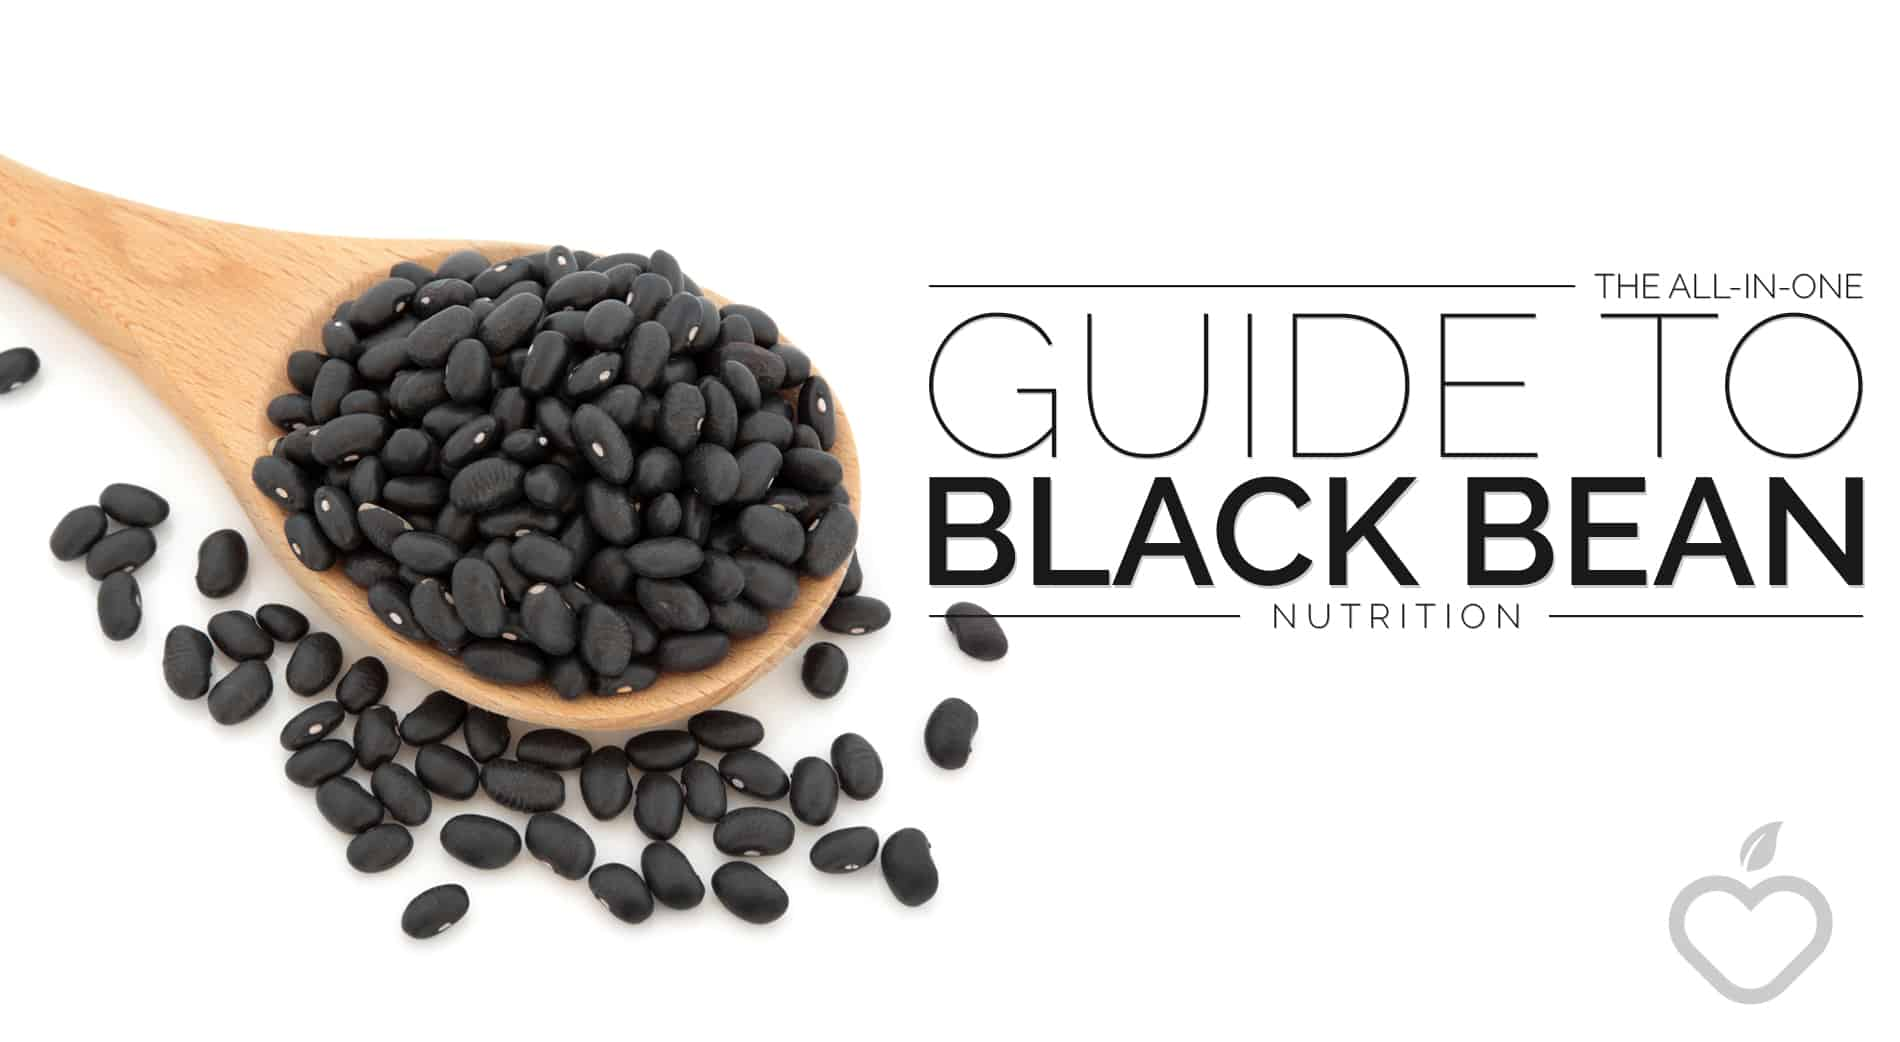 Black Bean Nutrition Image Design 1 - All-in-One Guide to Black Bean Nutrition